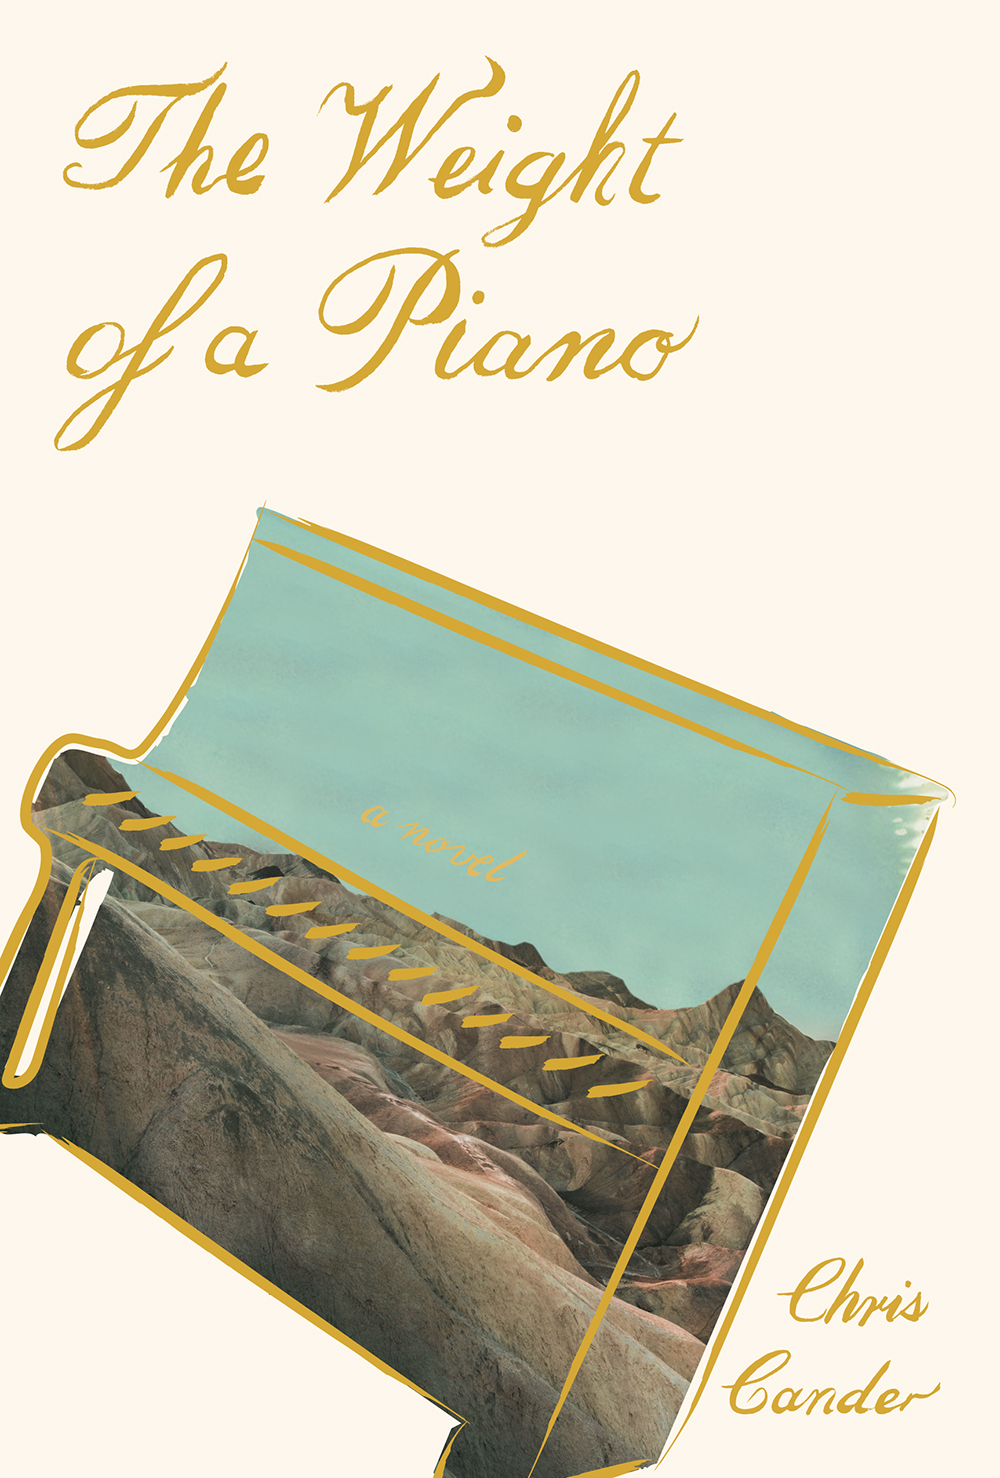 Chris Cander, The Weight of a Piano (Knopf, 2019).